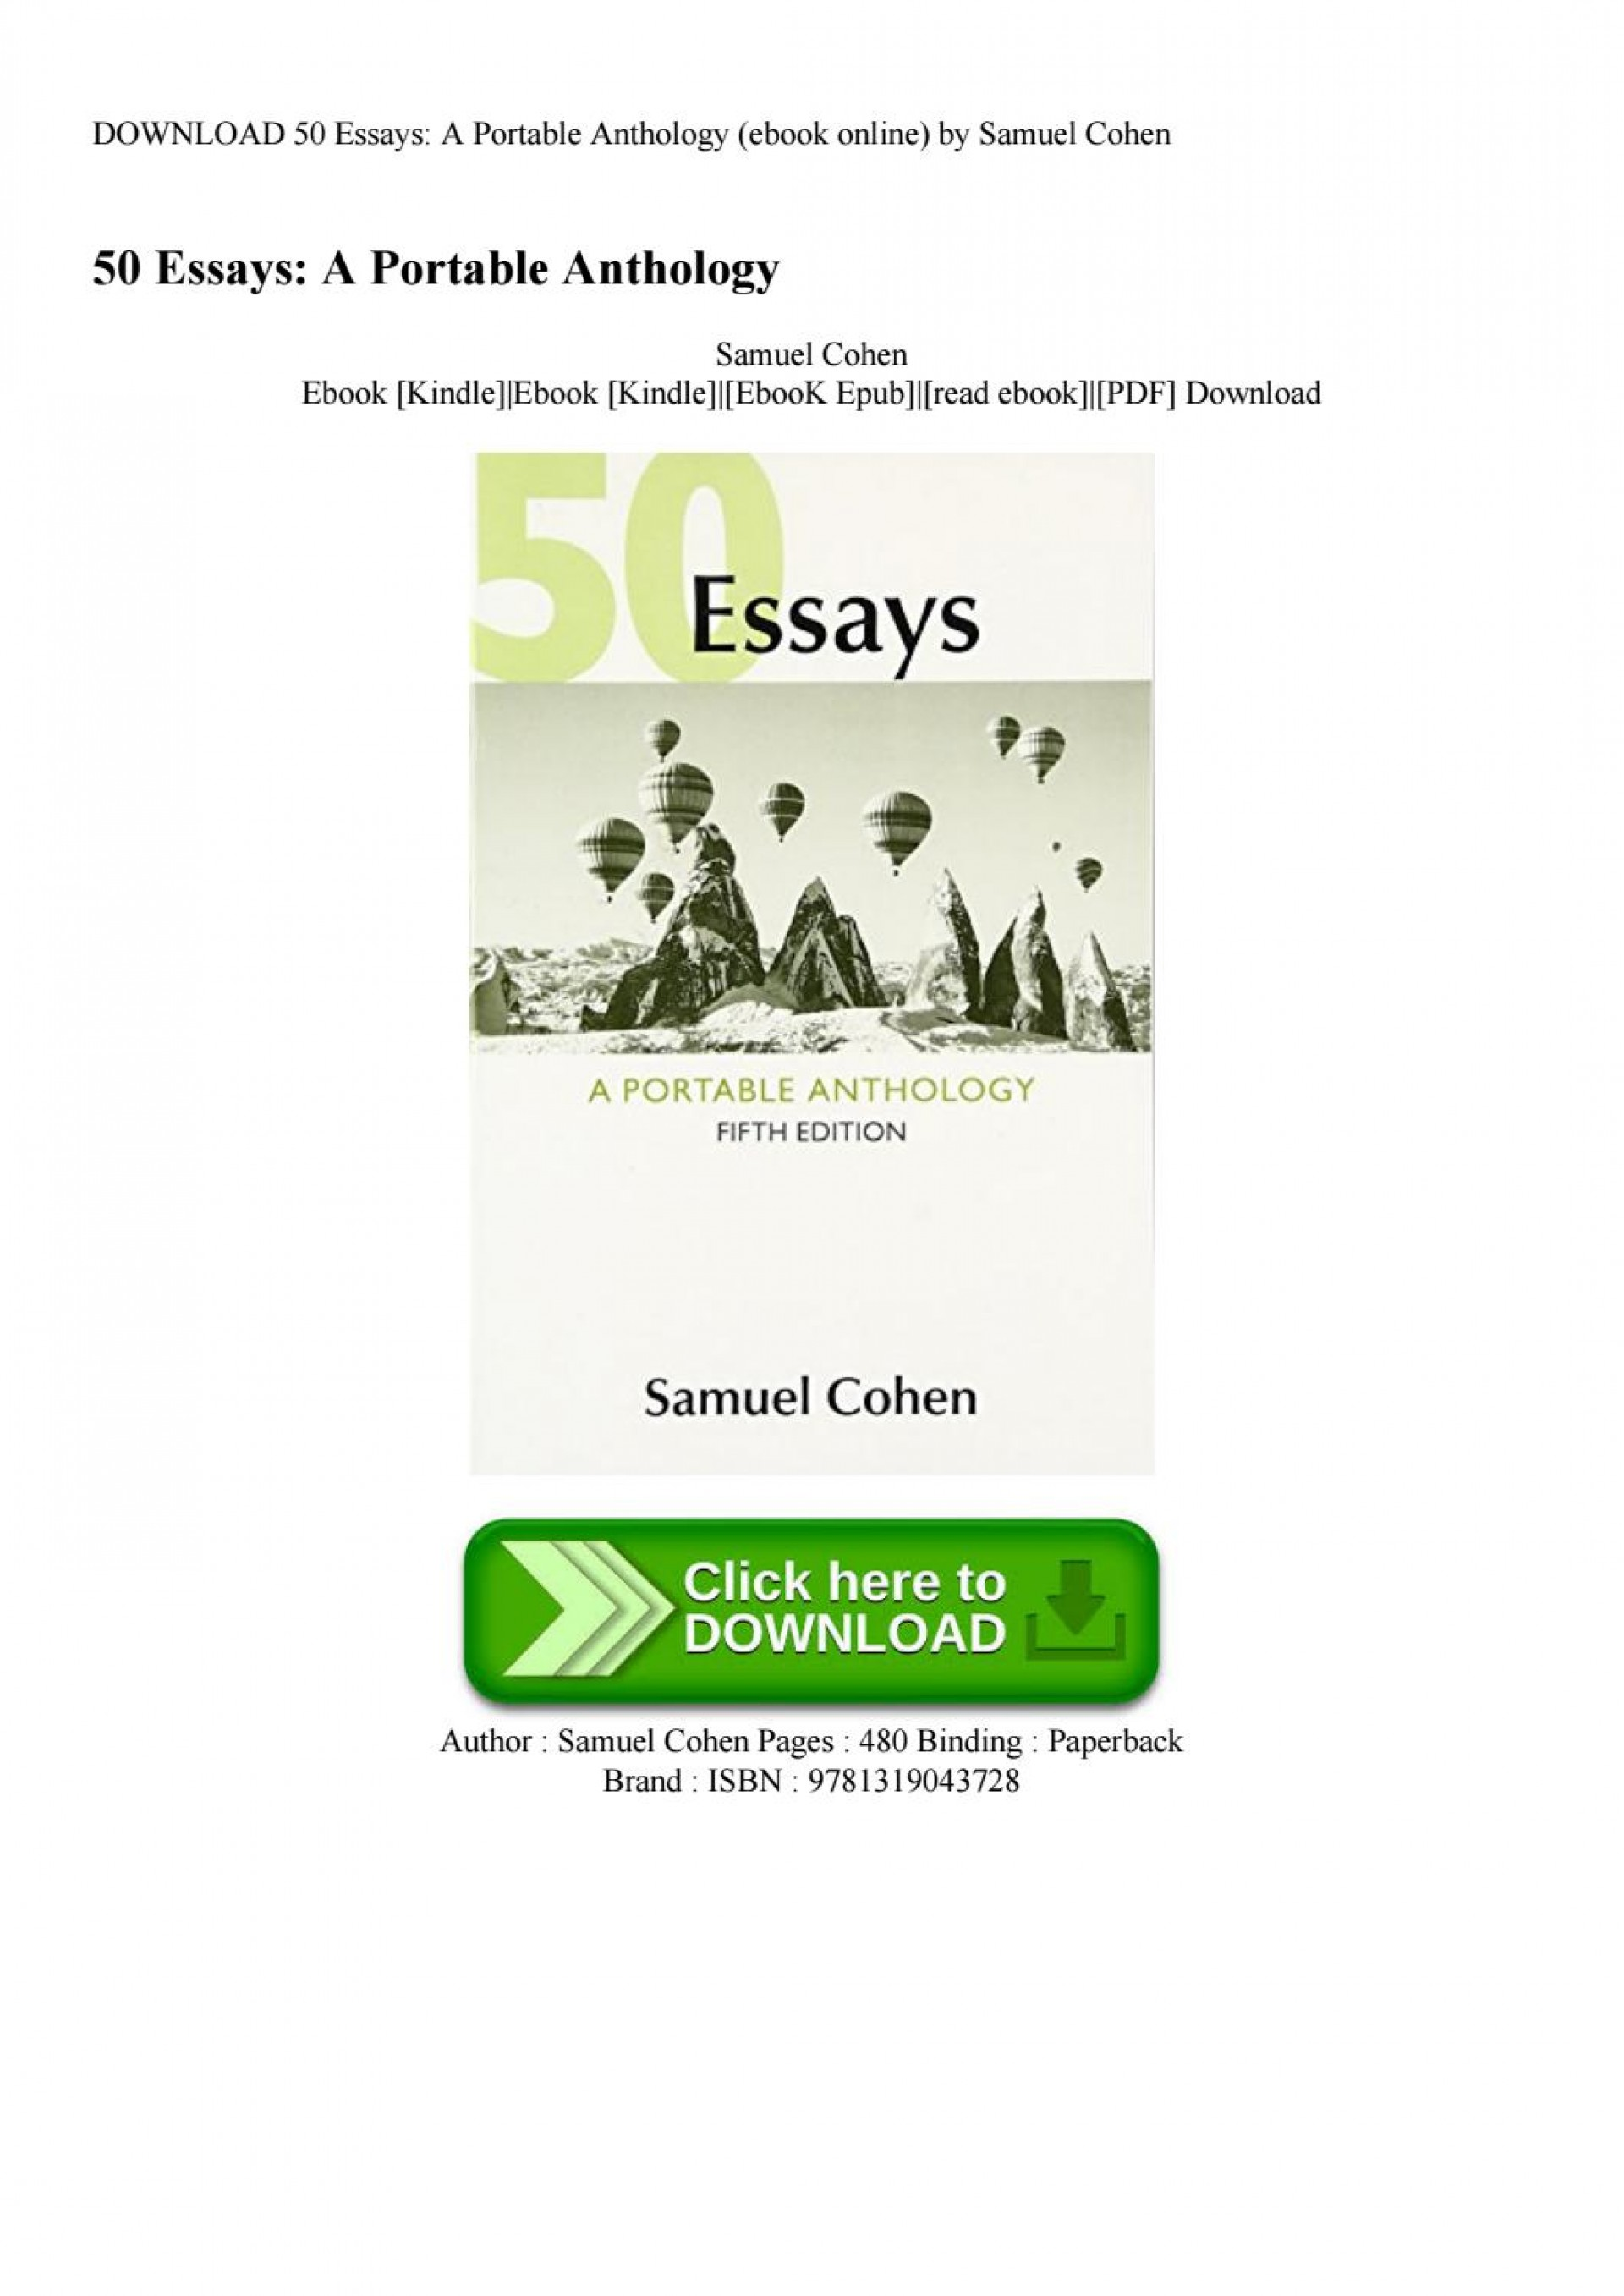 007 Essays 5th Edition Page 1 Essay Imposing 50 Fifty Great Pdf Free A Portable Anthology Ebook 1920